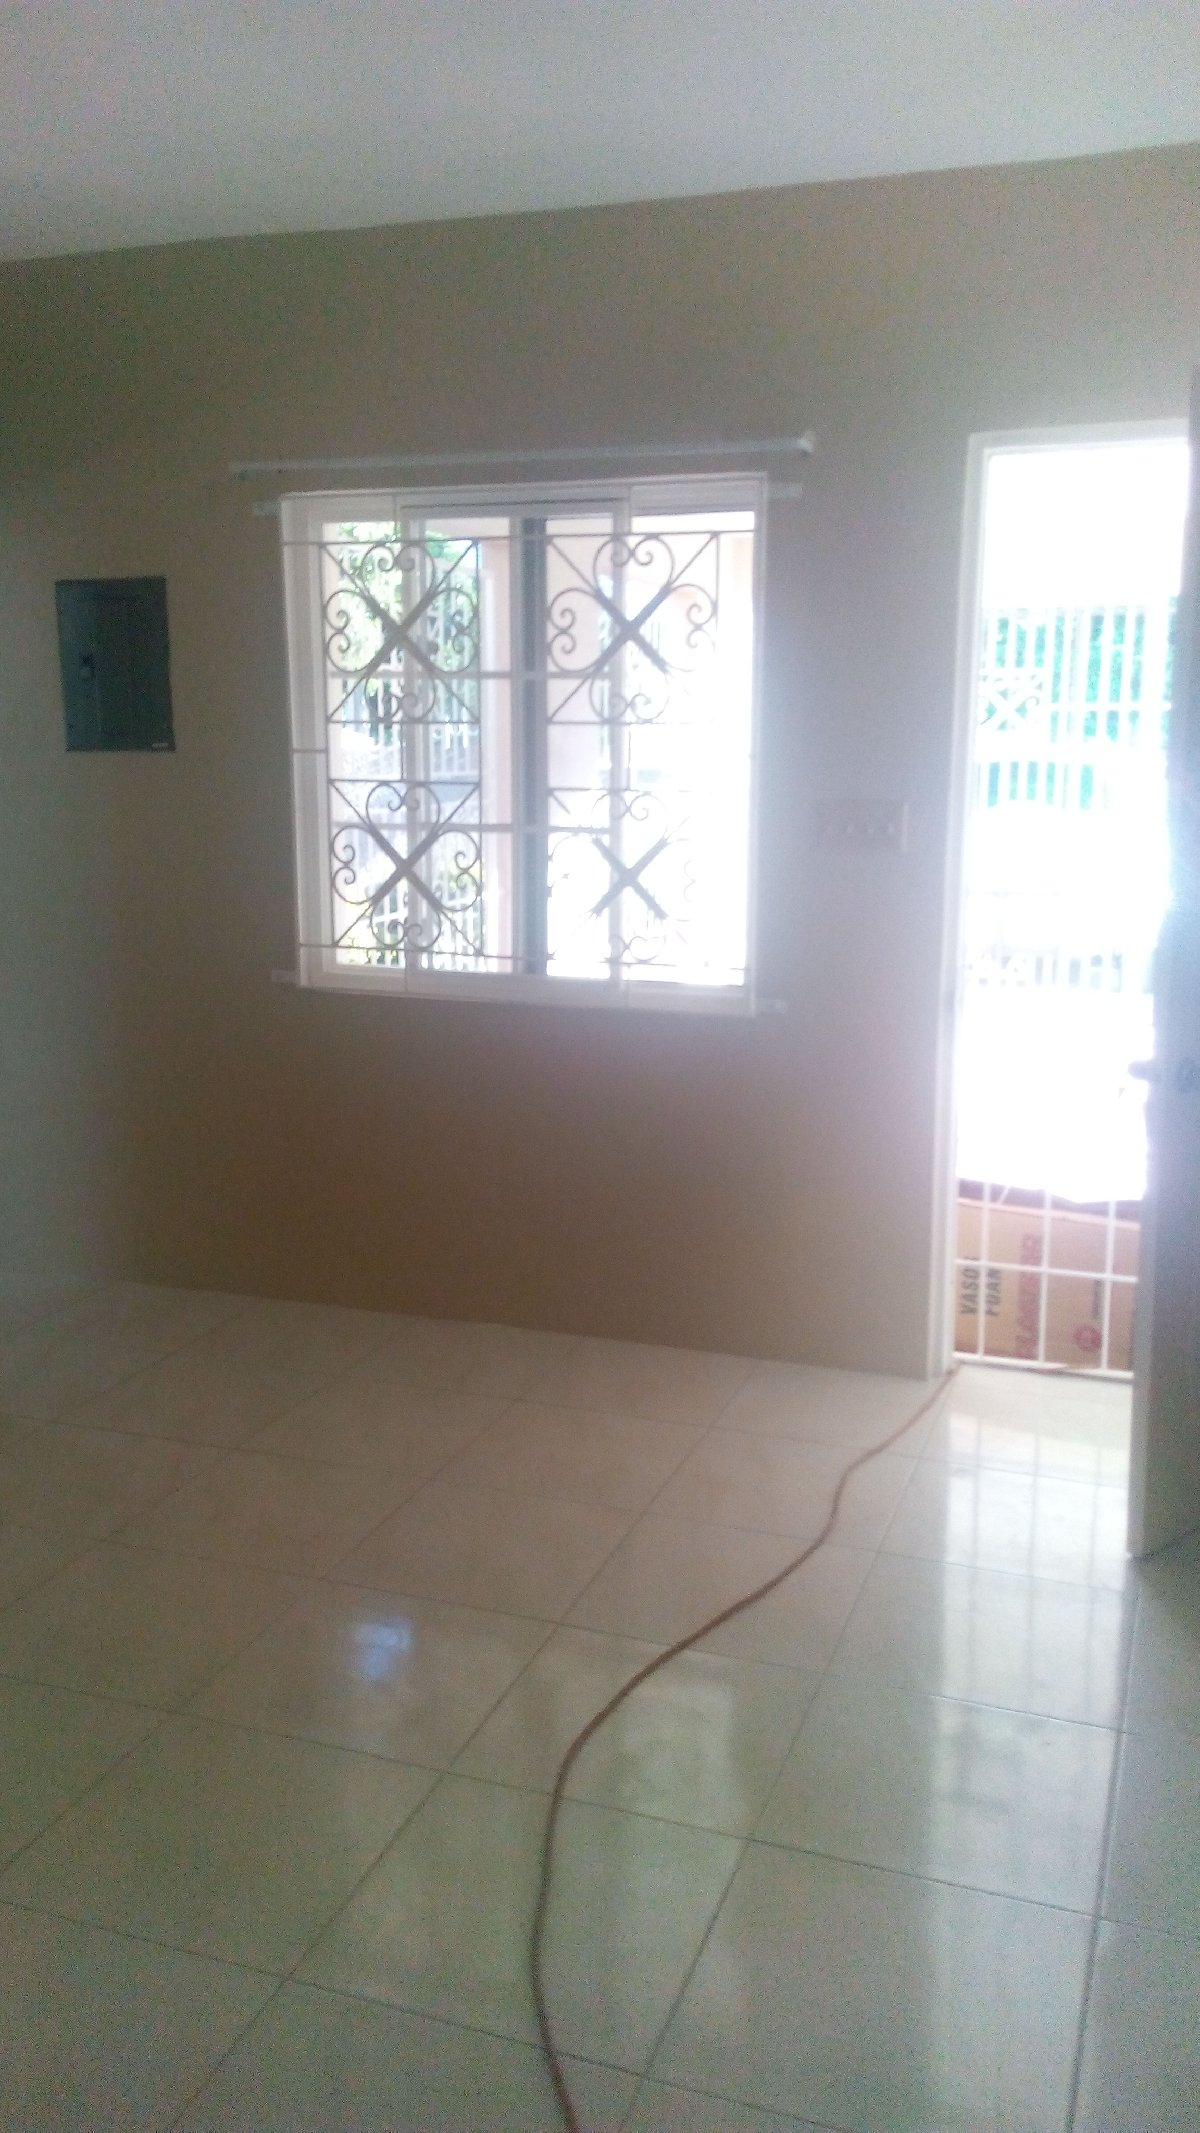 2 Bedroom 1 Bathroom Kitchen Living Dining For Rent In Molynes Kingston St Andrew Houses